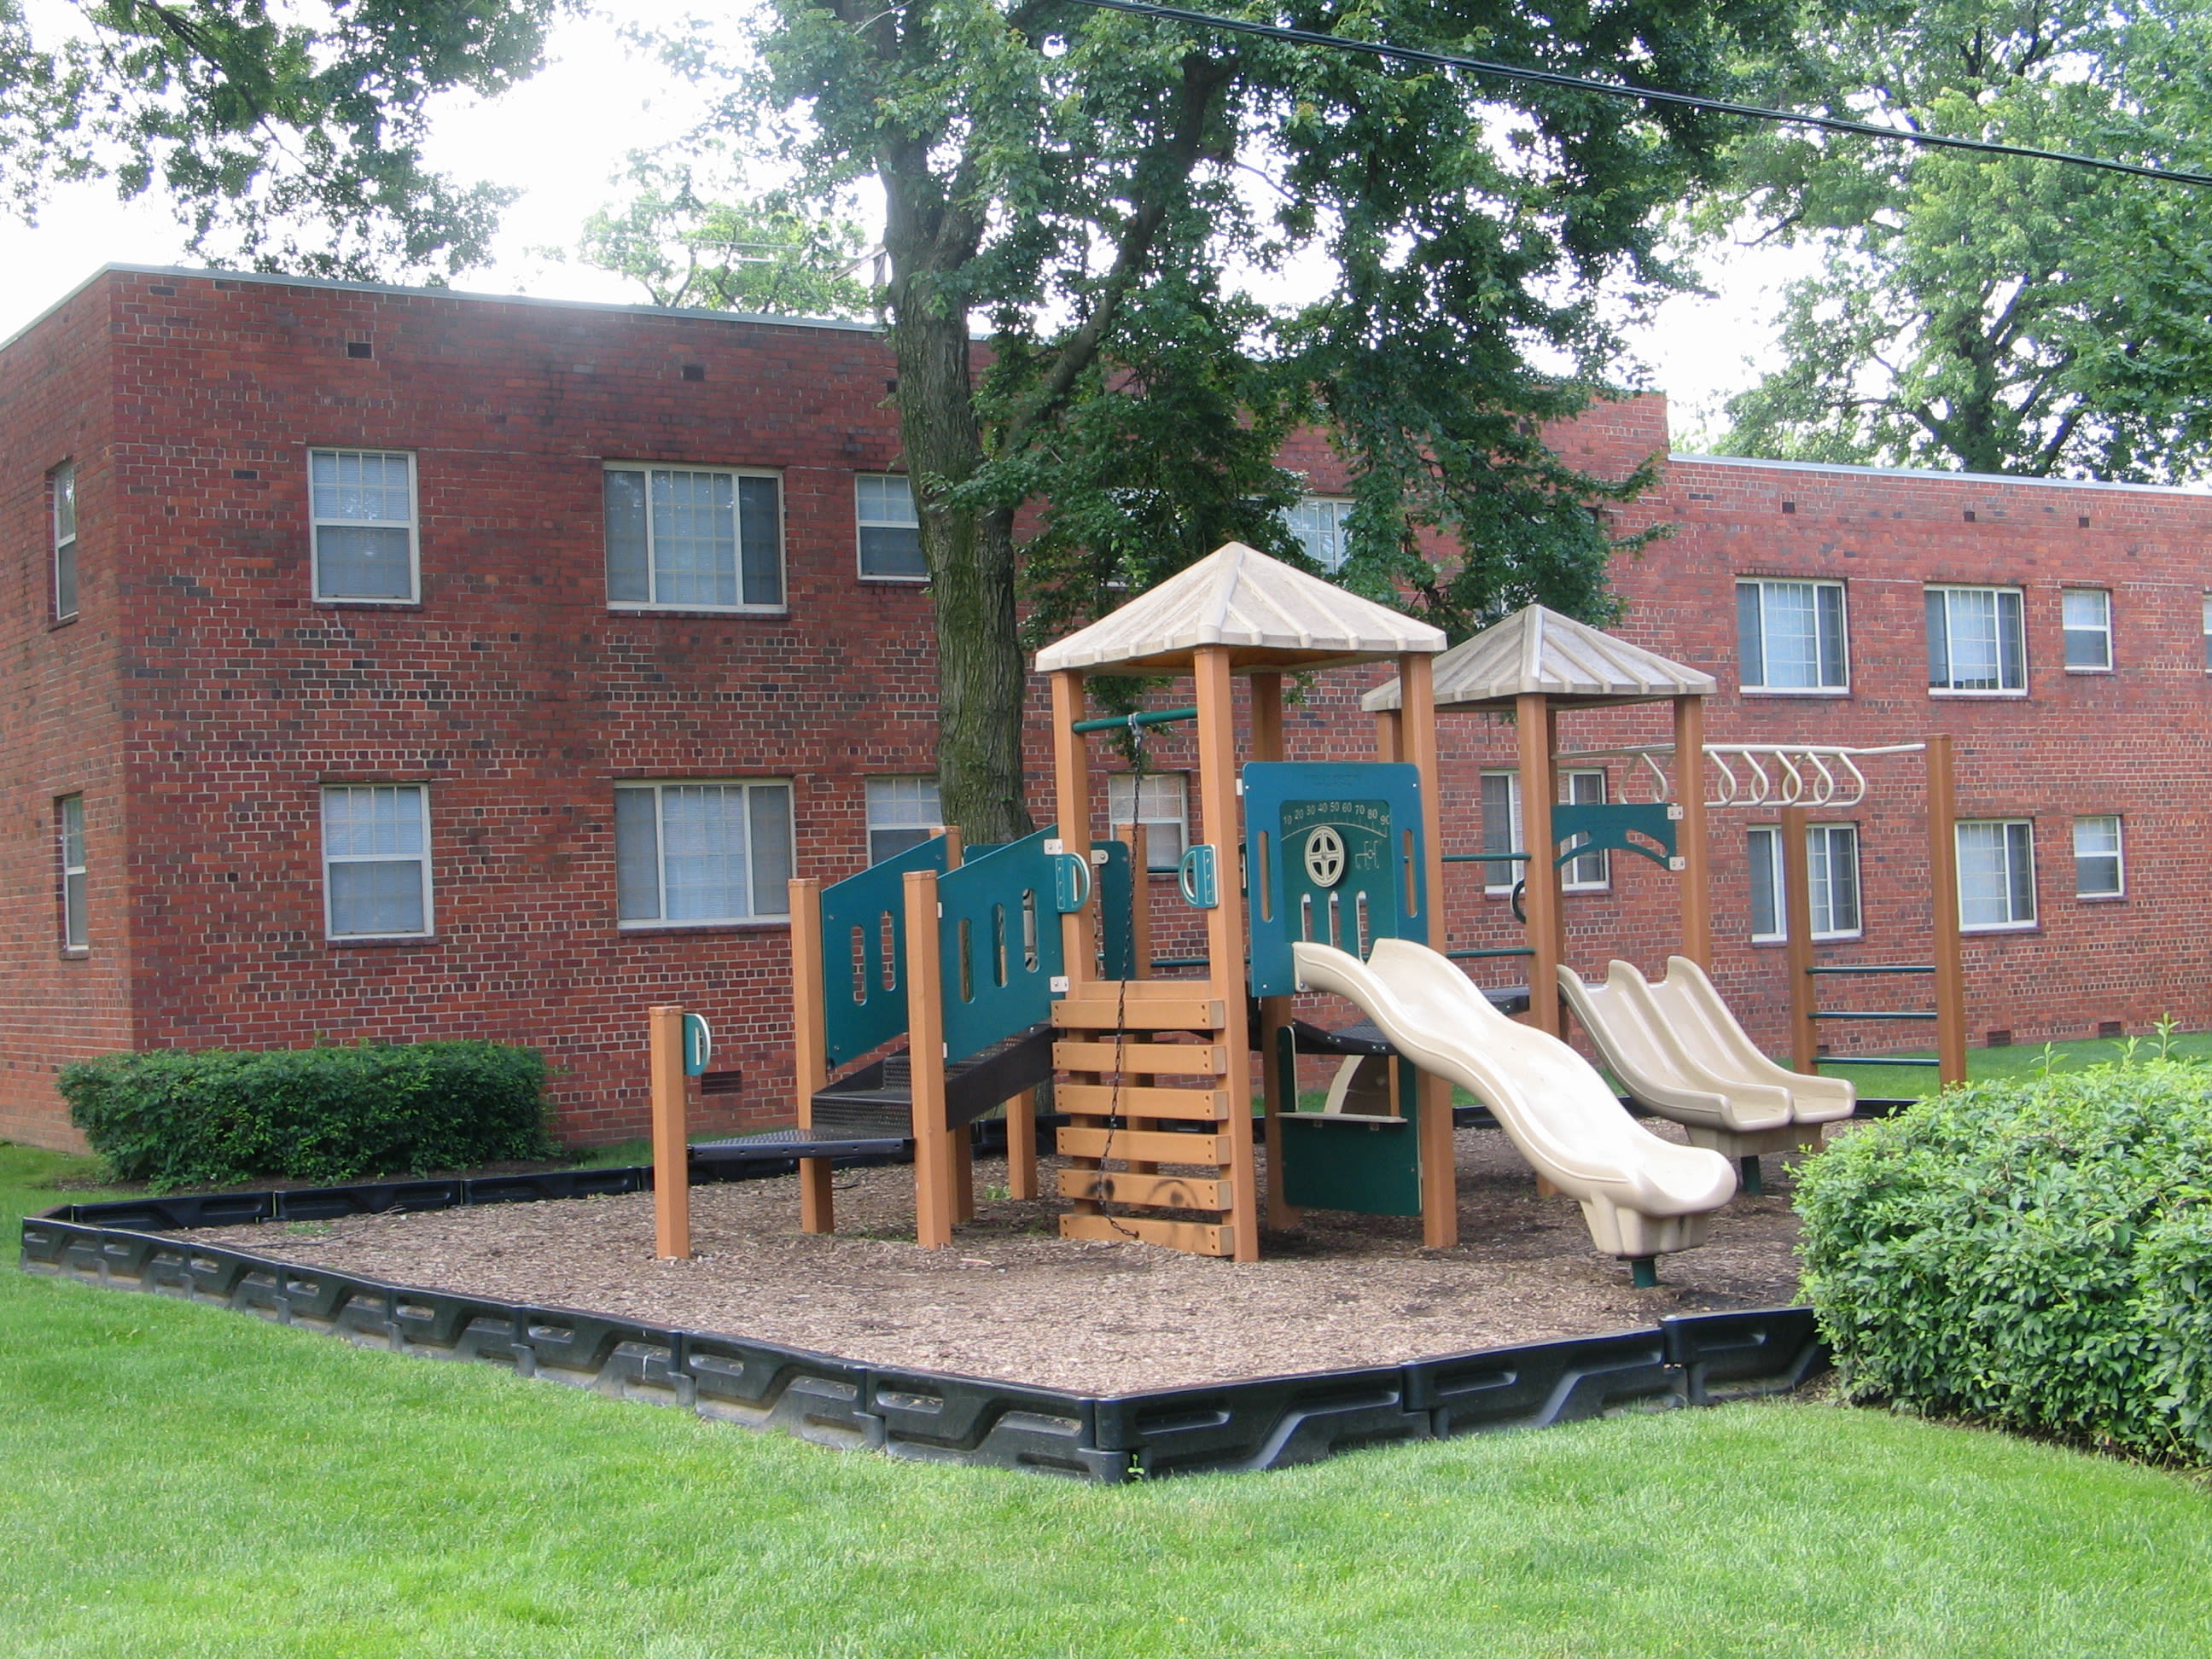 A playground that is great for entertaining at apartments in Hyattsville, Maryland